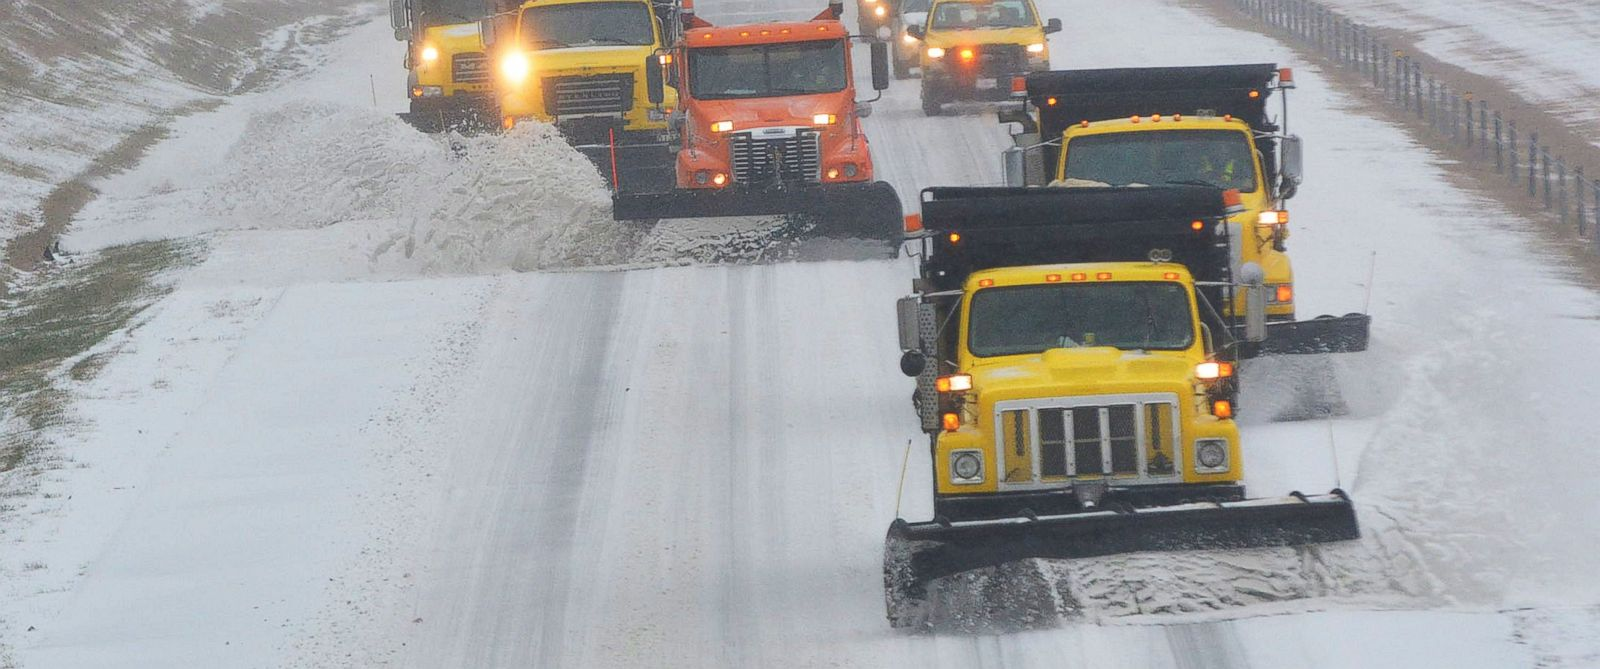 PHOTO: With road conditions getting worse, snow plows and traffic make their way south along Interstate 40 in Durham and Orange county in N.C., Jan. 22, 2016.